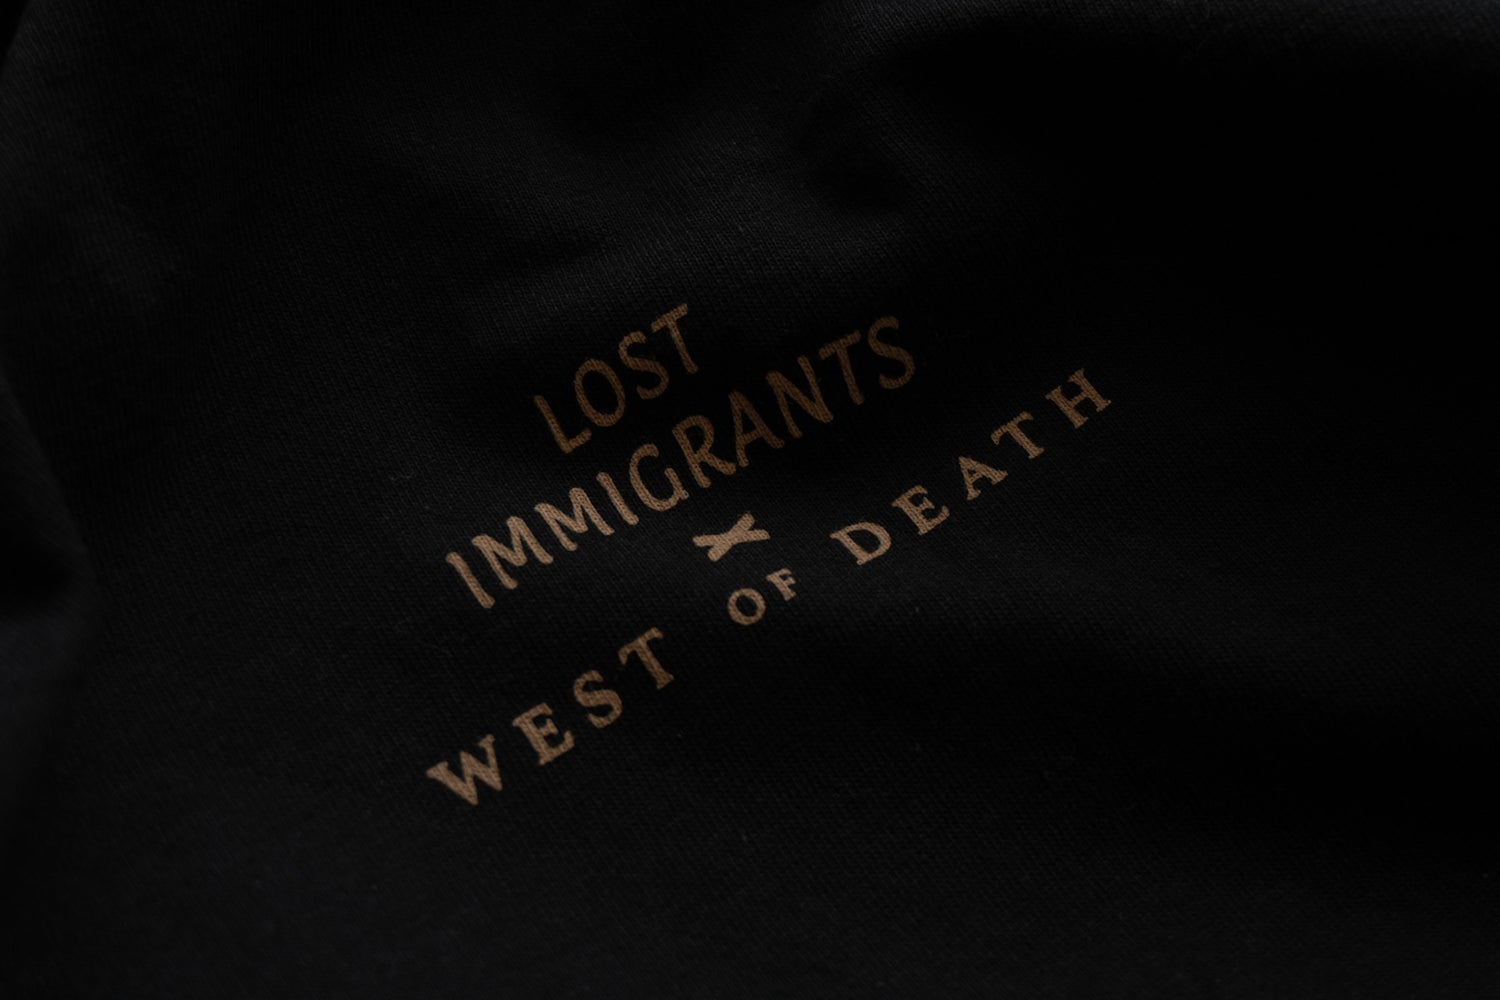 Image of Black Lost Immigrants x West of Death Tee